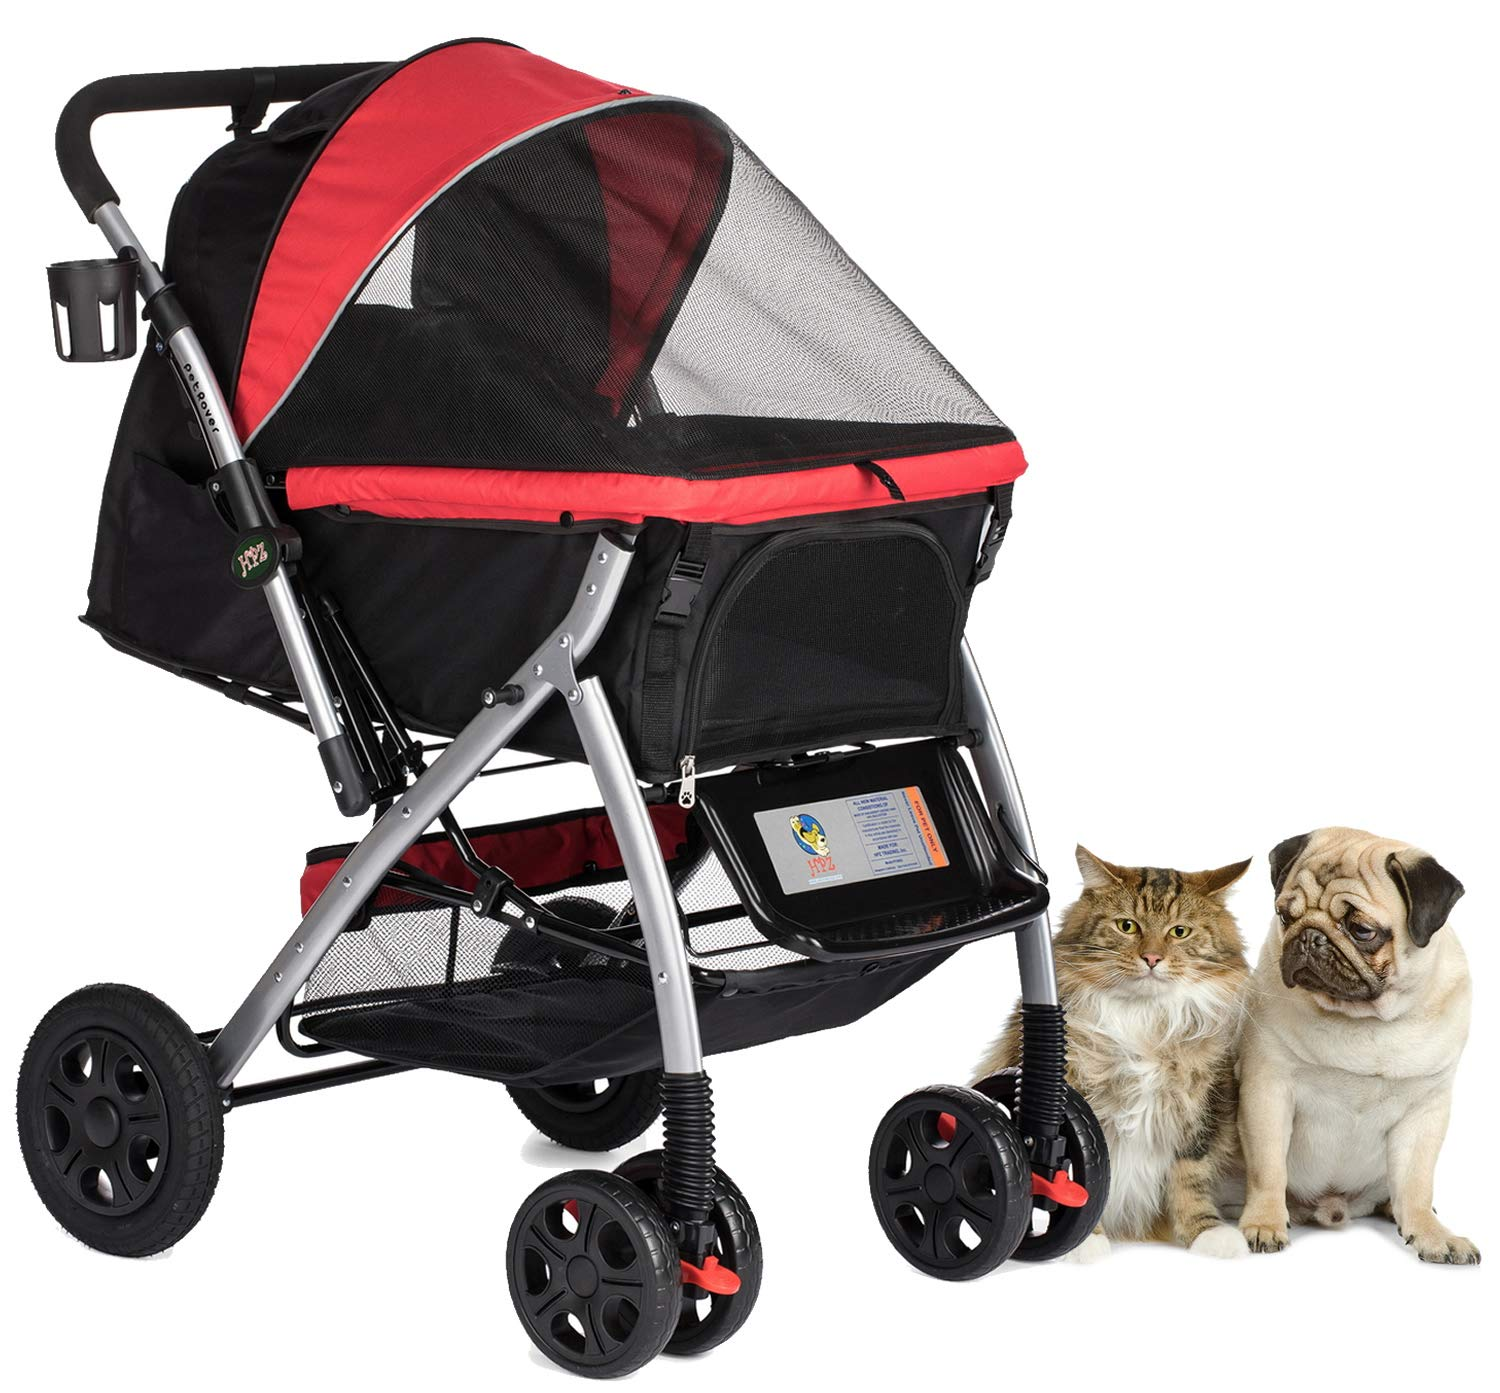 HPZ PET Rover Premium Heavy Duty Dog/Cat/Pet Stroller Travel Carriage with Convertible Compartment/Zipperless Entry/Reversible Handlebar/Pump-Free Rubber Tires for Small, Medium and Large Pets (Red) by HPZ